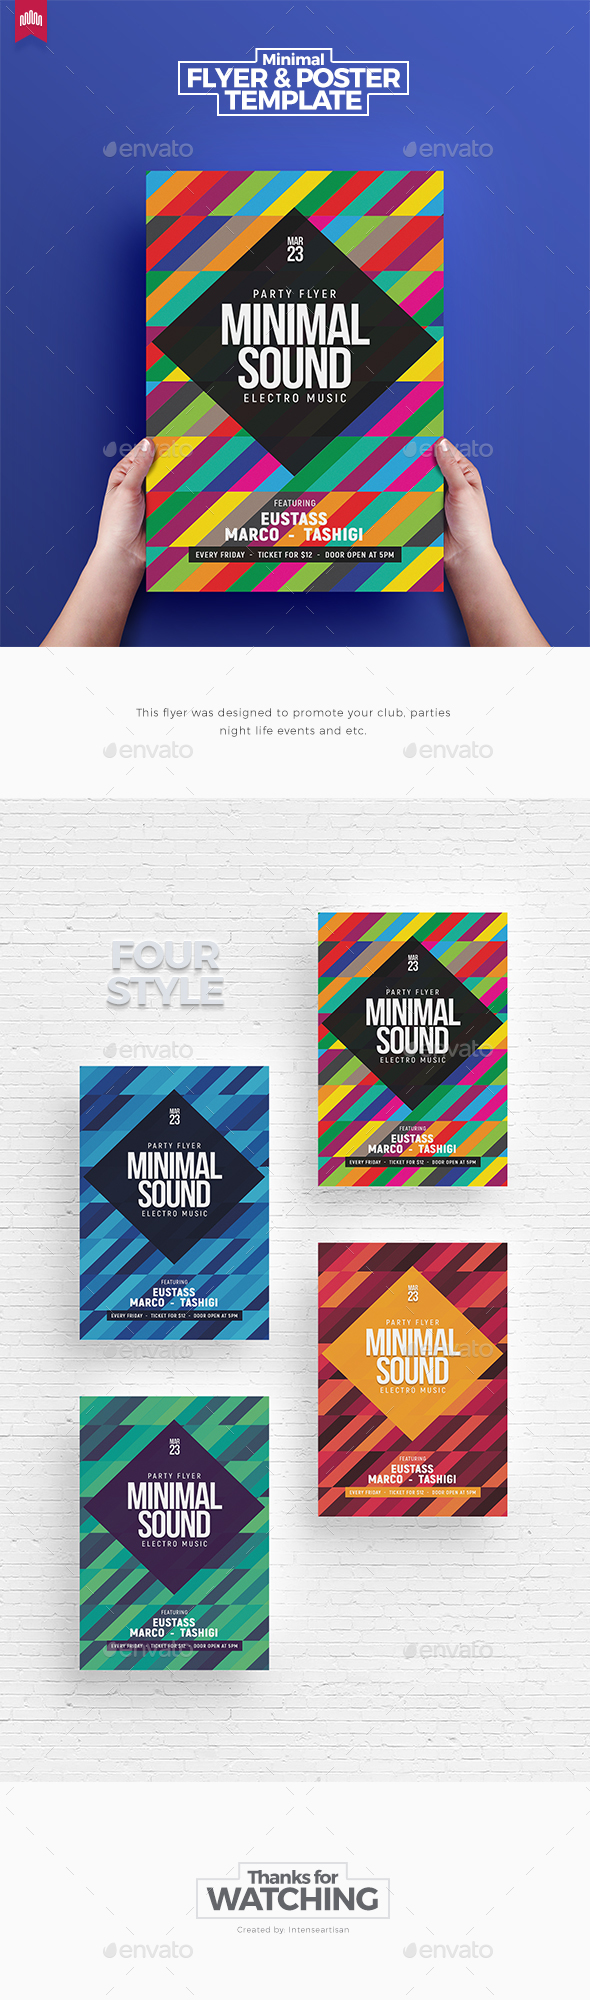 Minimal Sound V.2 - Flyer Template - Clubs & Parties Events